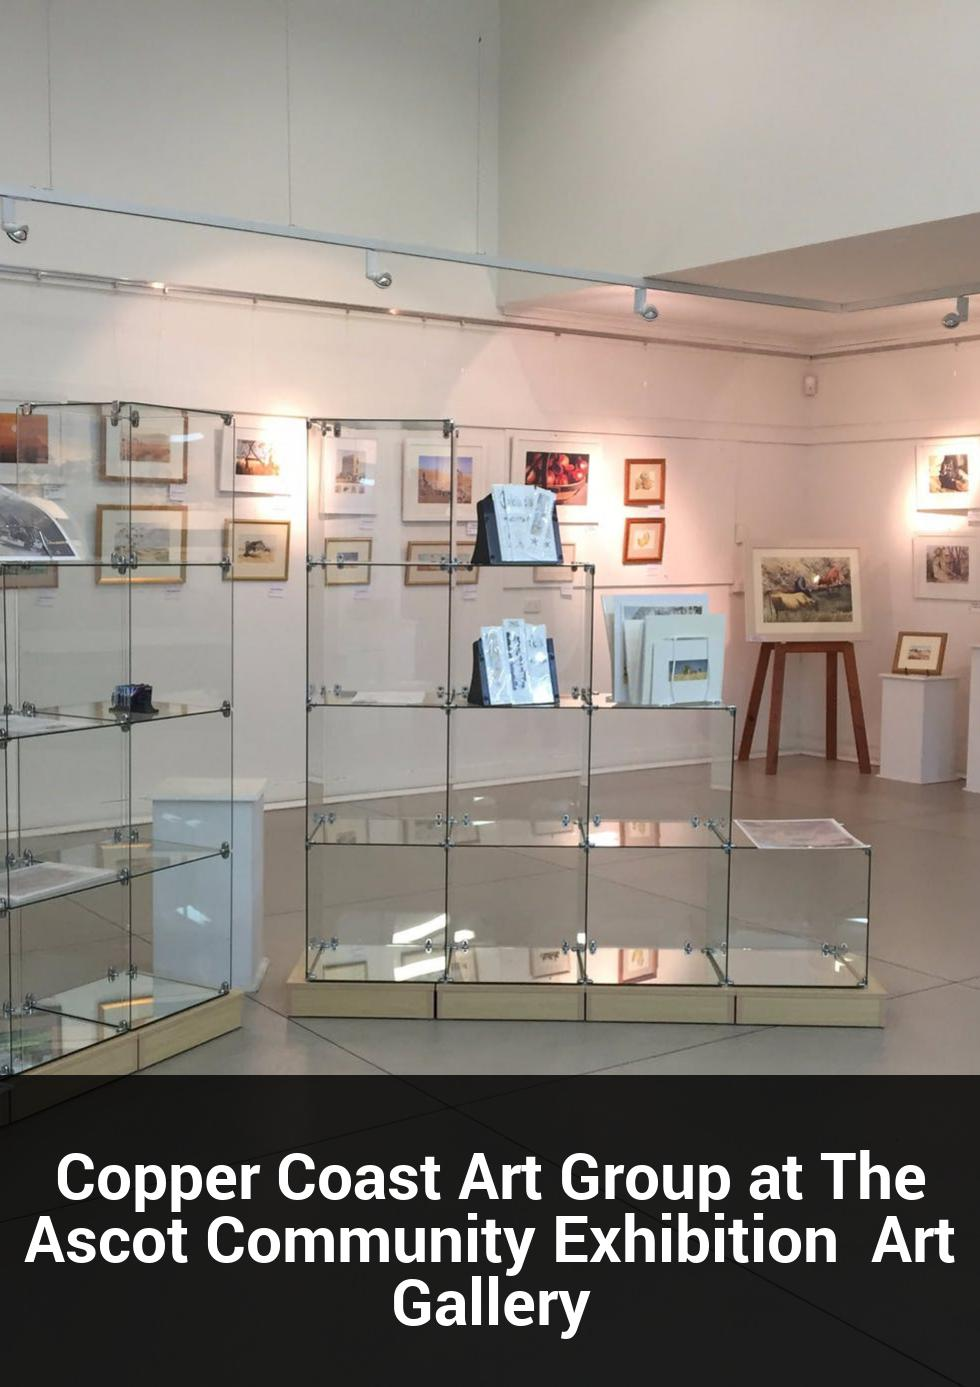 Copper Coast Art Group at The Ascot Community Exhibition  Art Gallery at The Ascot Art Gallery